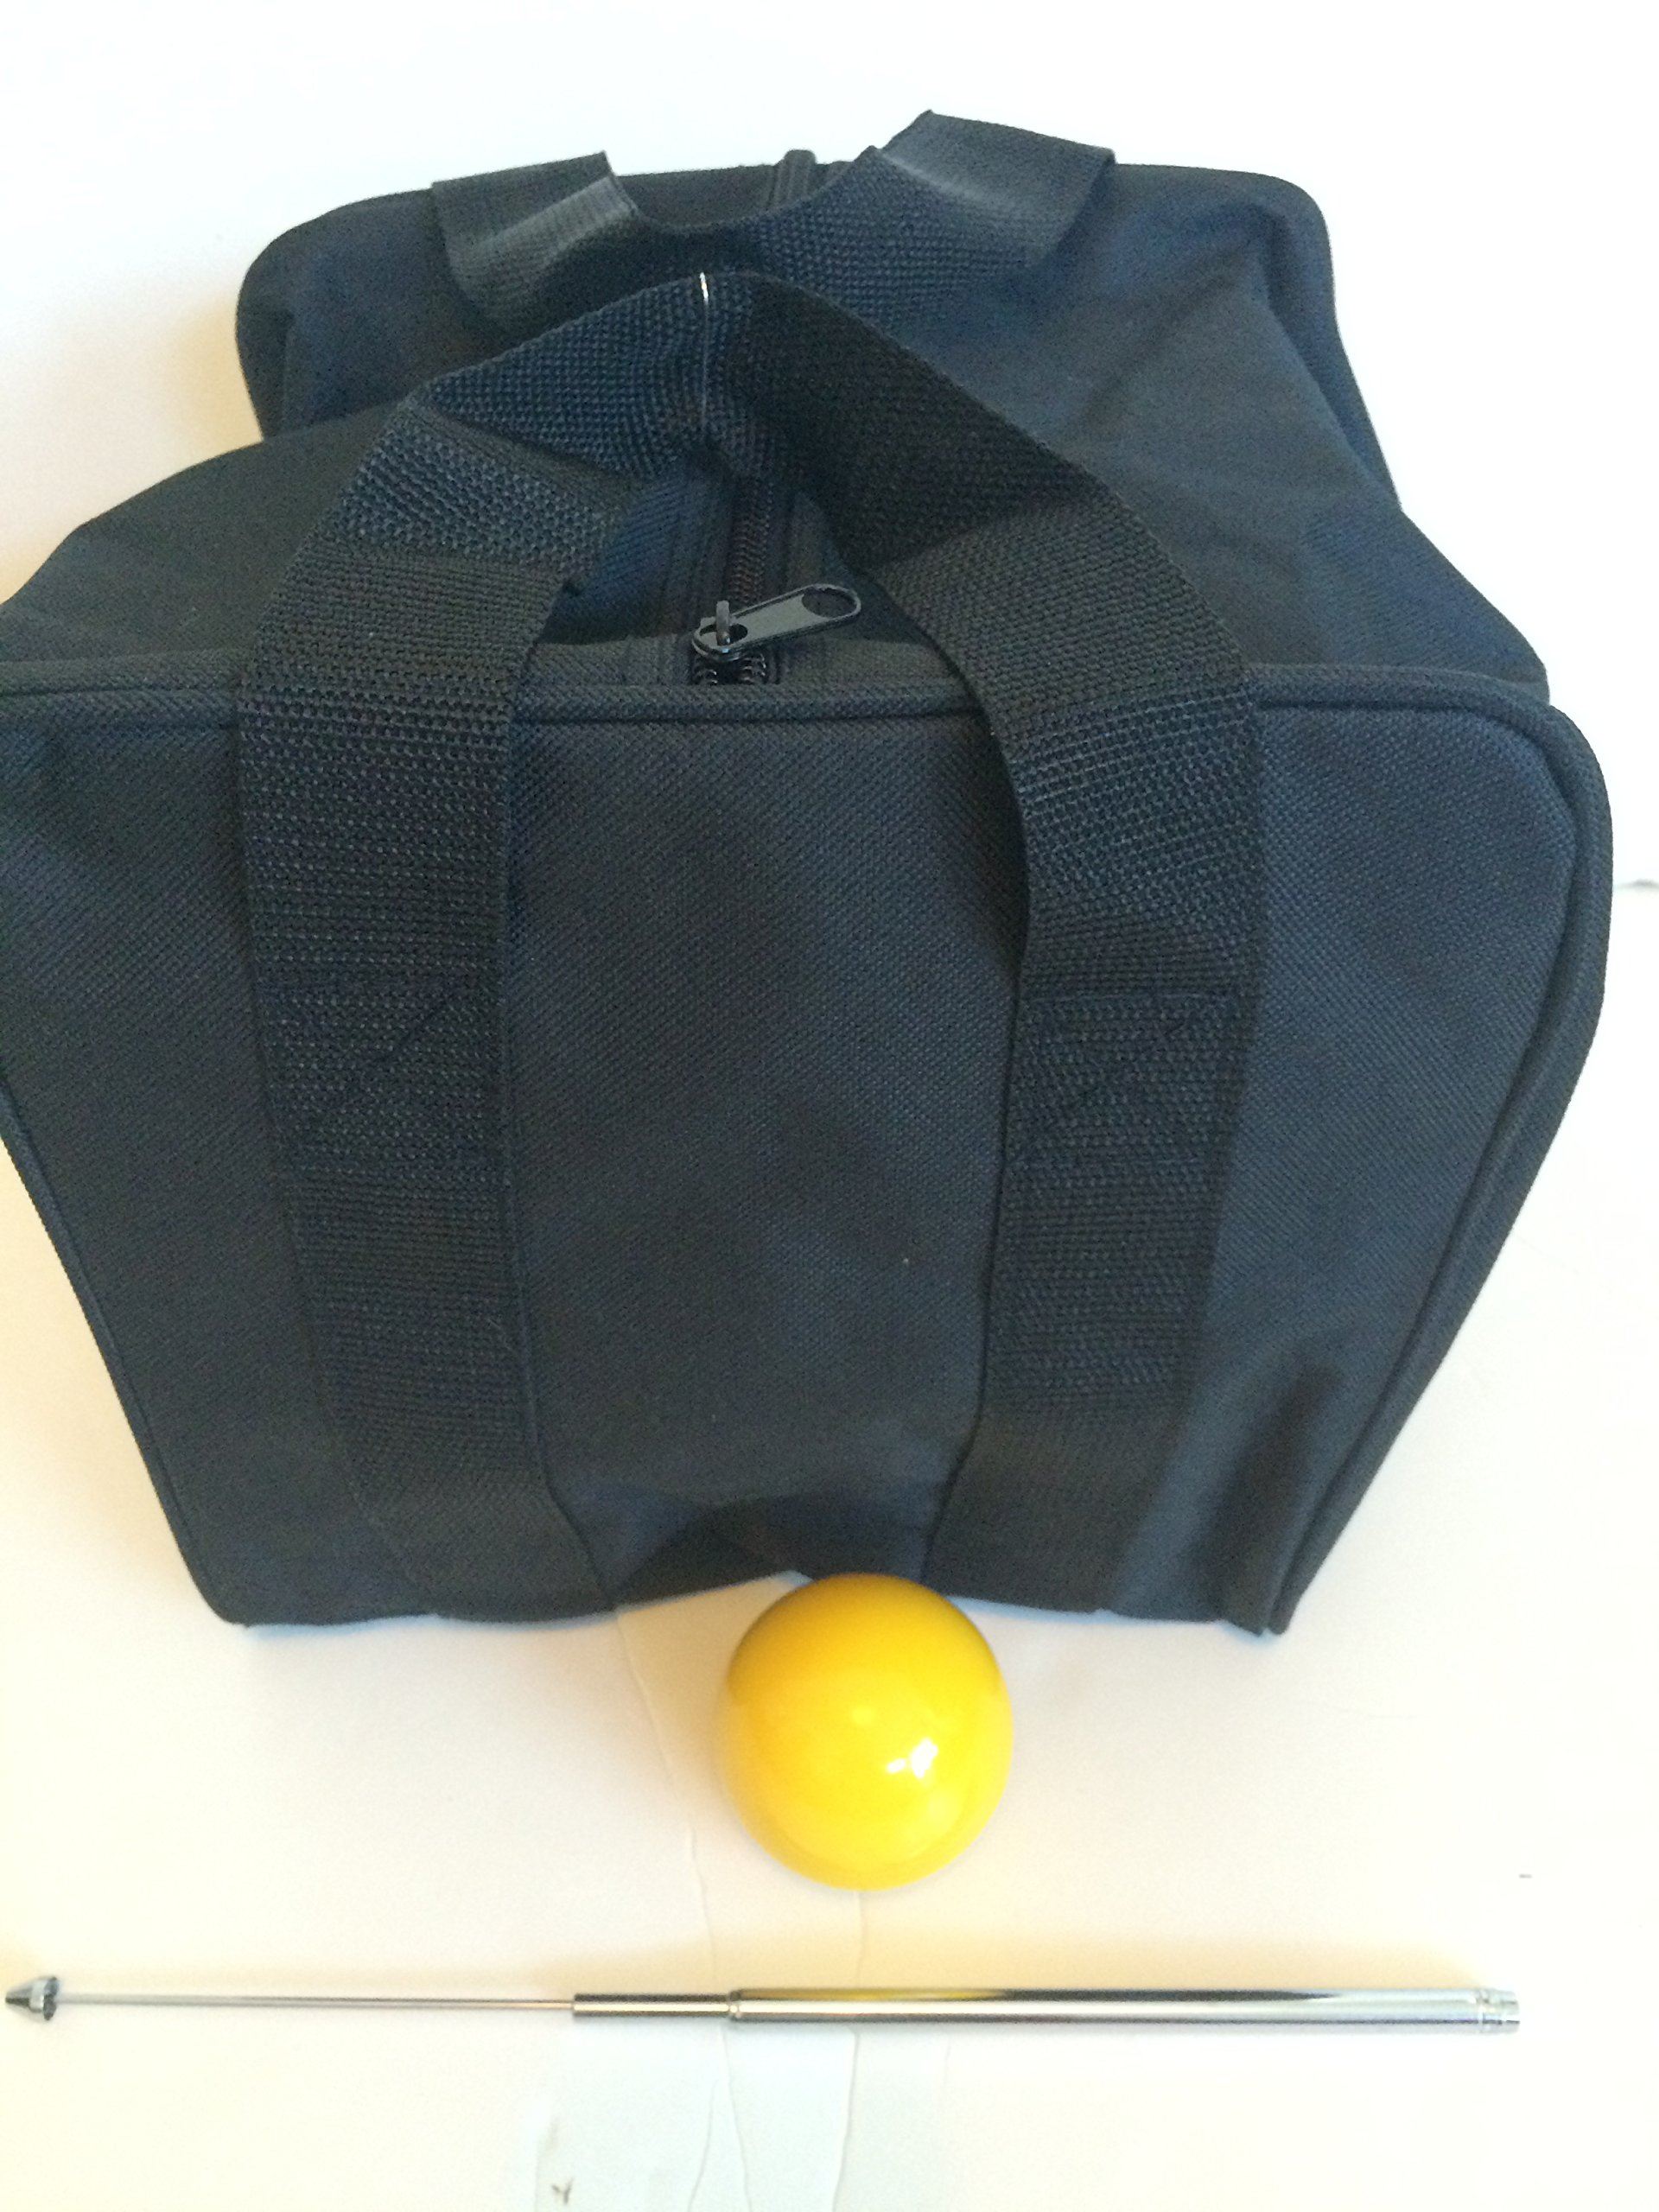 Unique Bocce Accessories Package - Extra Heavy Duty Nylon Bocce Bag (Black with Black Handles), Yellow pallina, Extendable Measuring Device